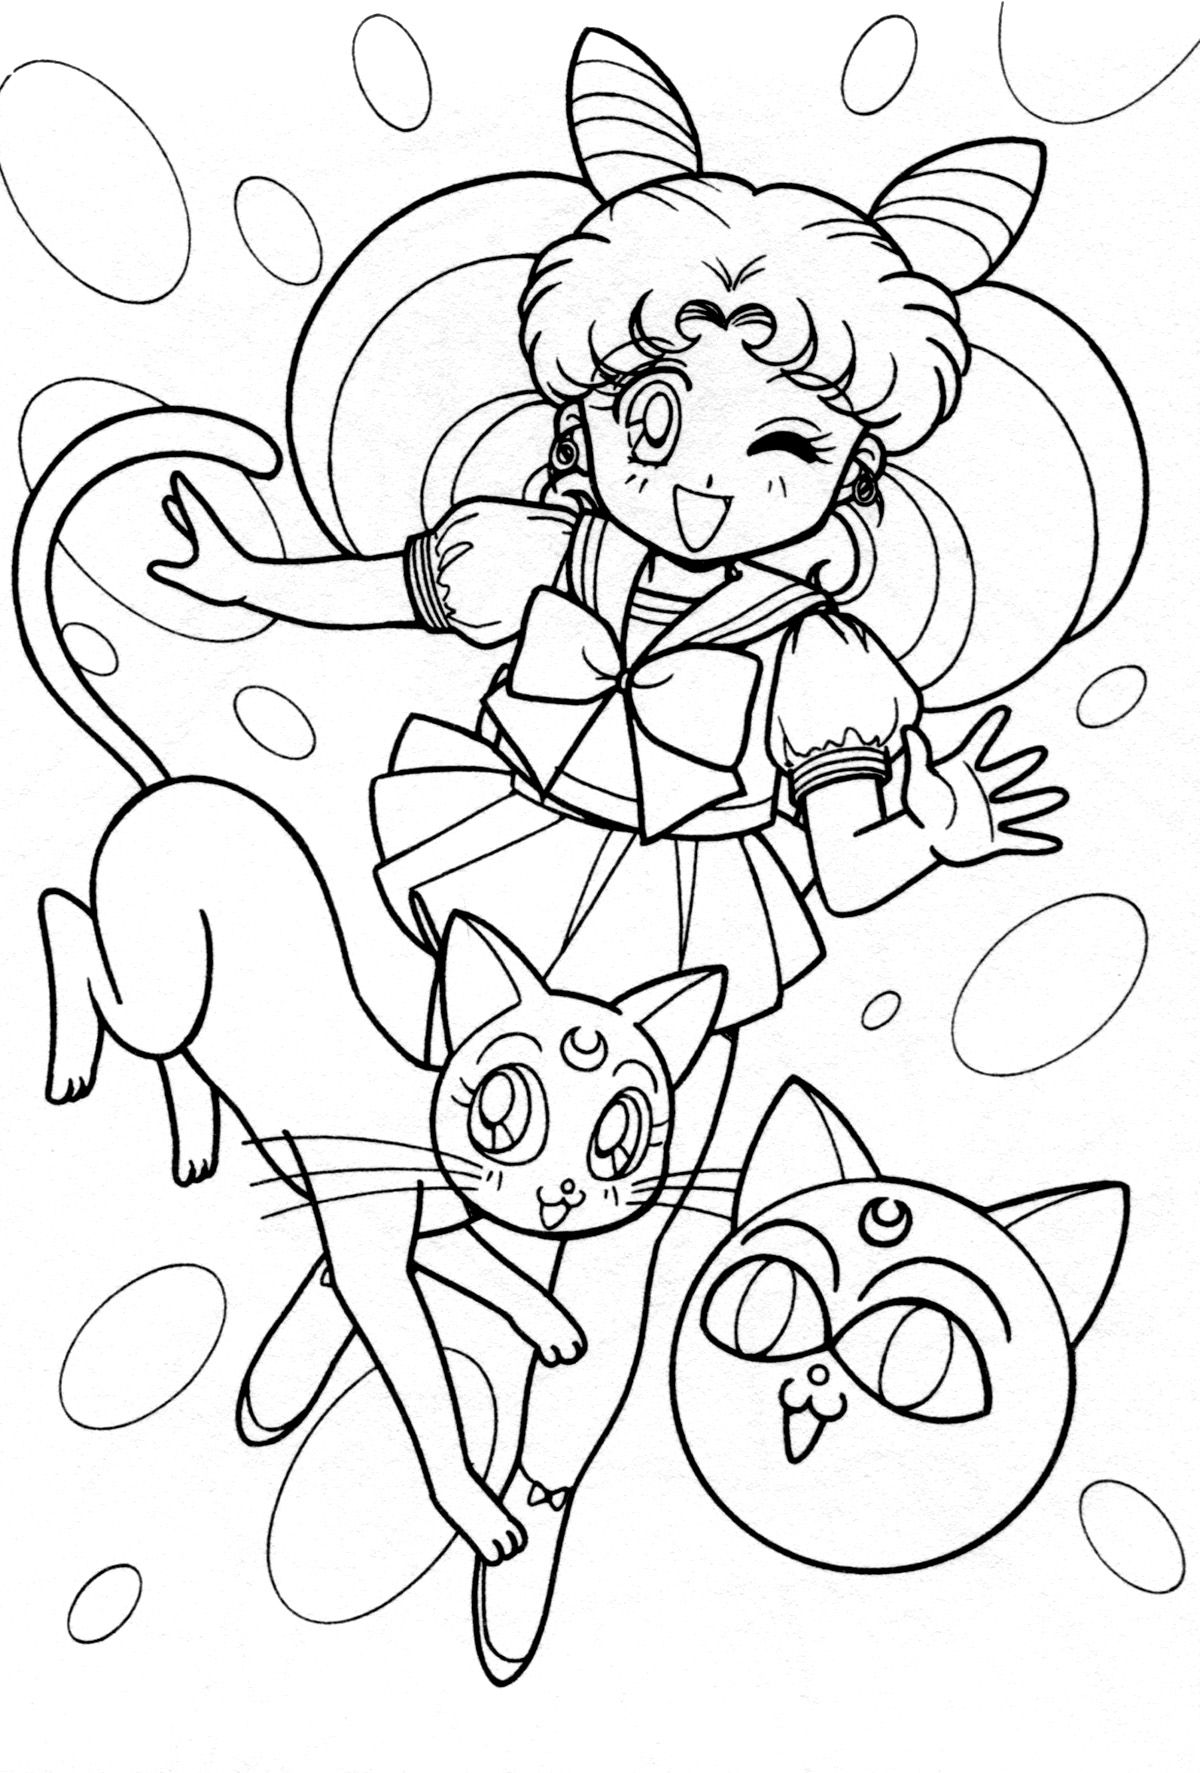 chibi010.jpg (1200×1773) | Coloring pages | Pinterest | Sailor and Moon